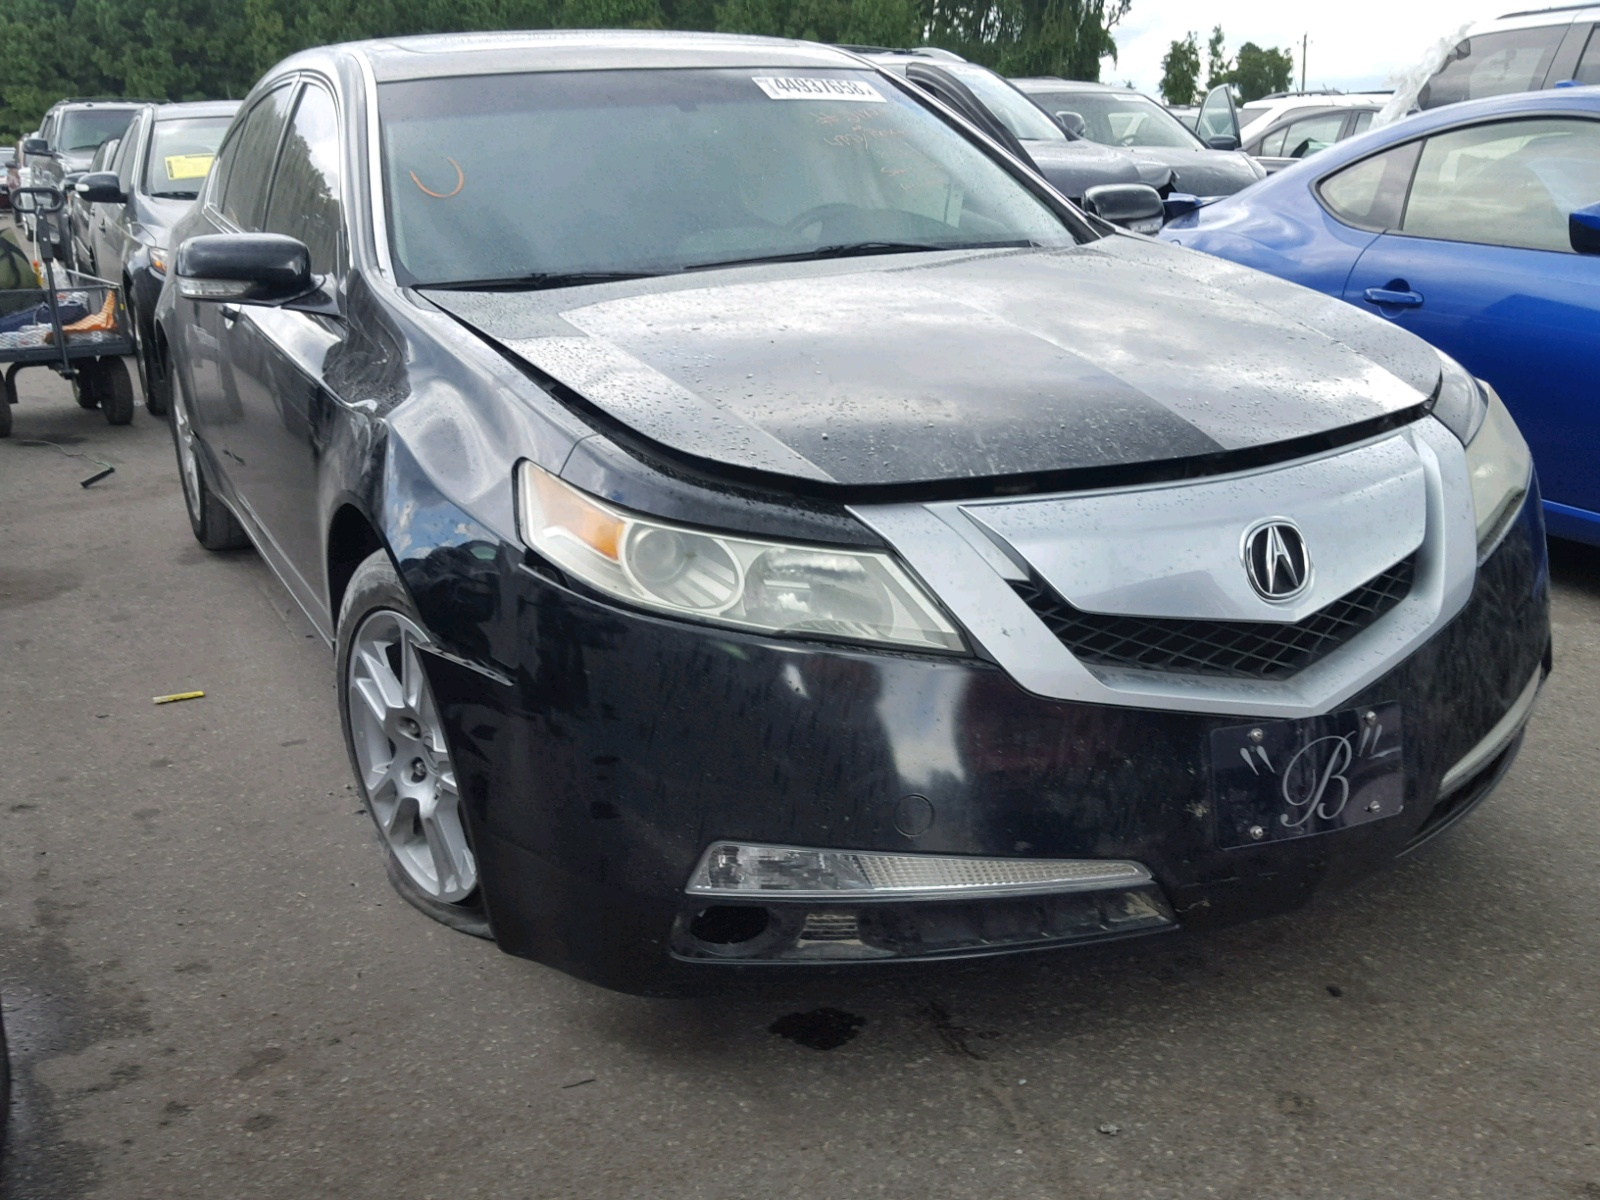 Salvage 2009 Acura TL for sale